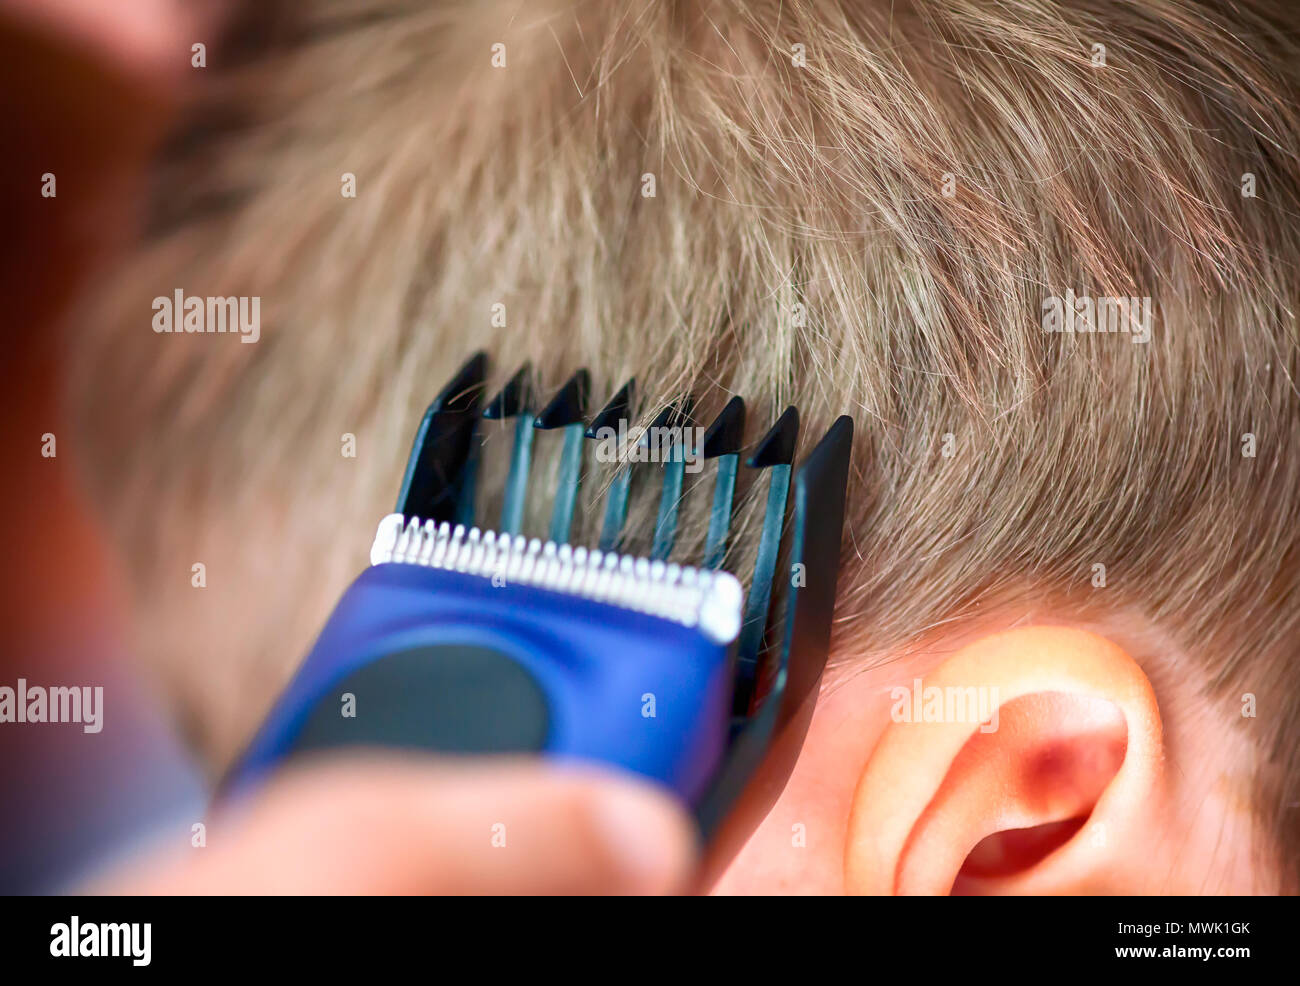 Child Haircut with Hairclipper. Close-up. - Stock Image